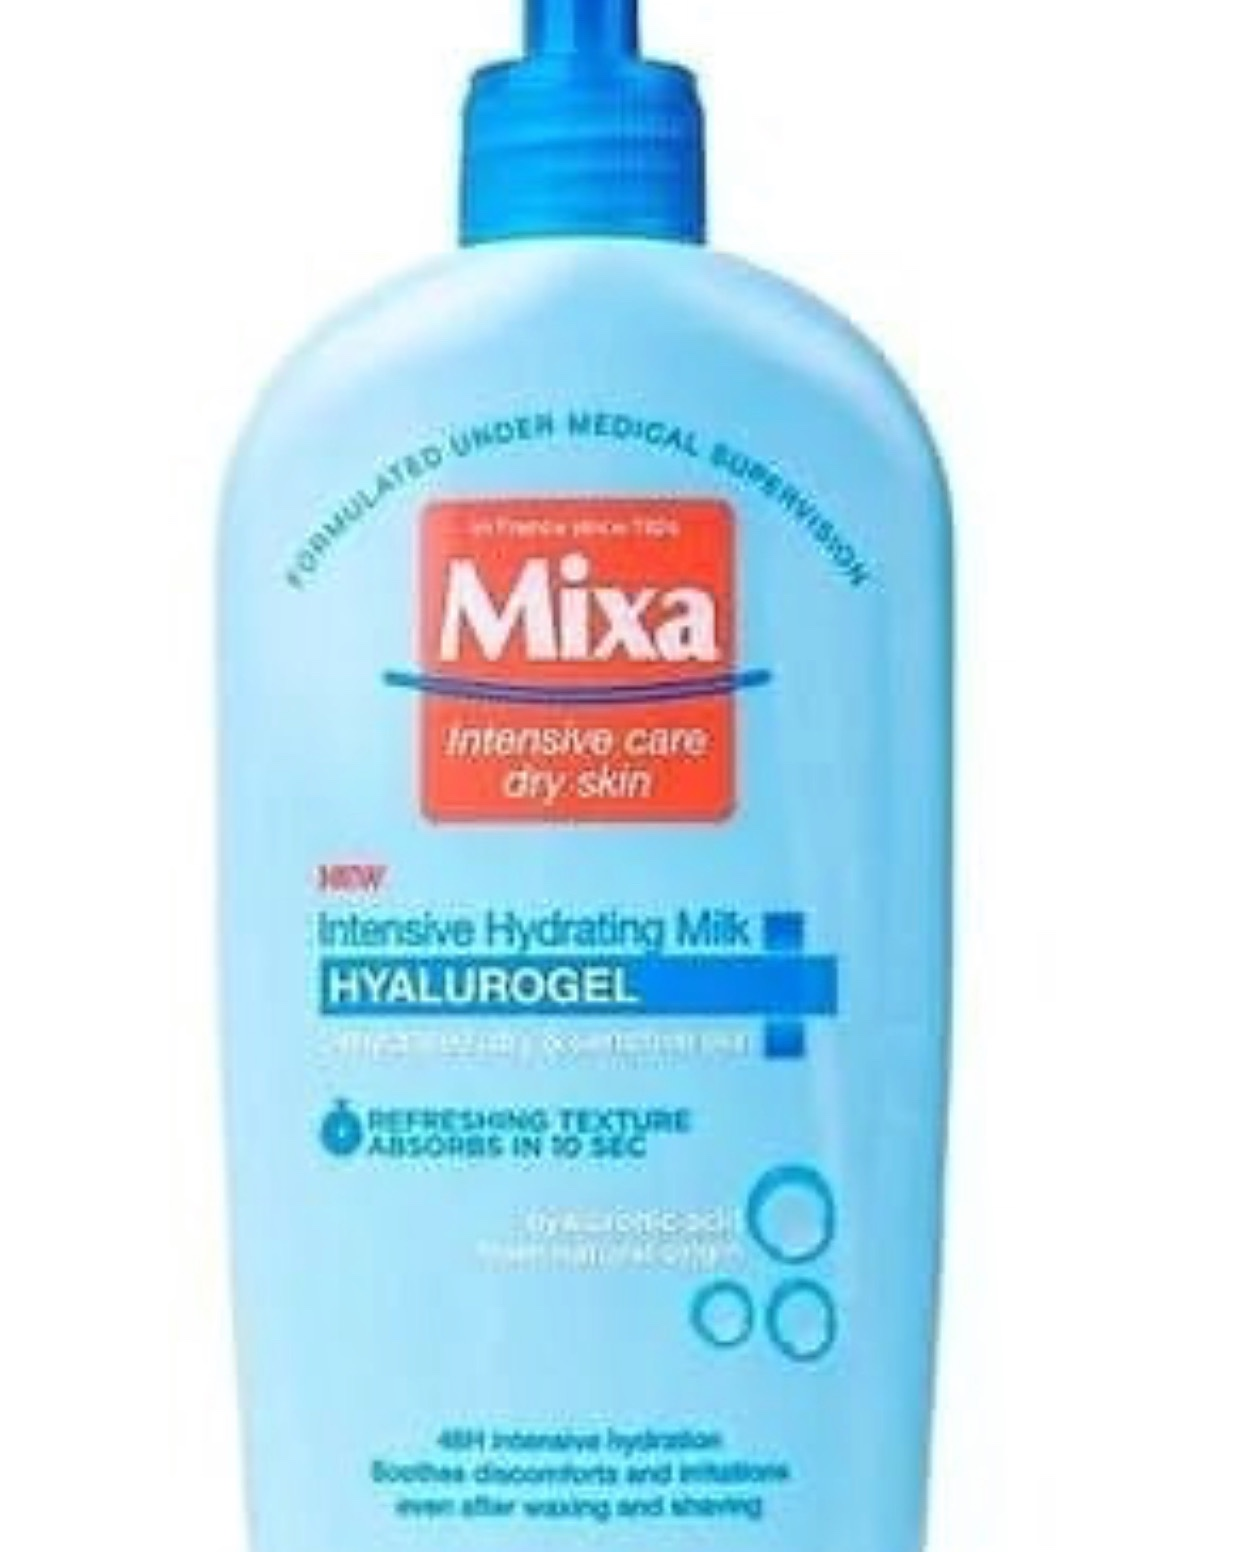 Mixa body lotion